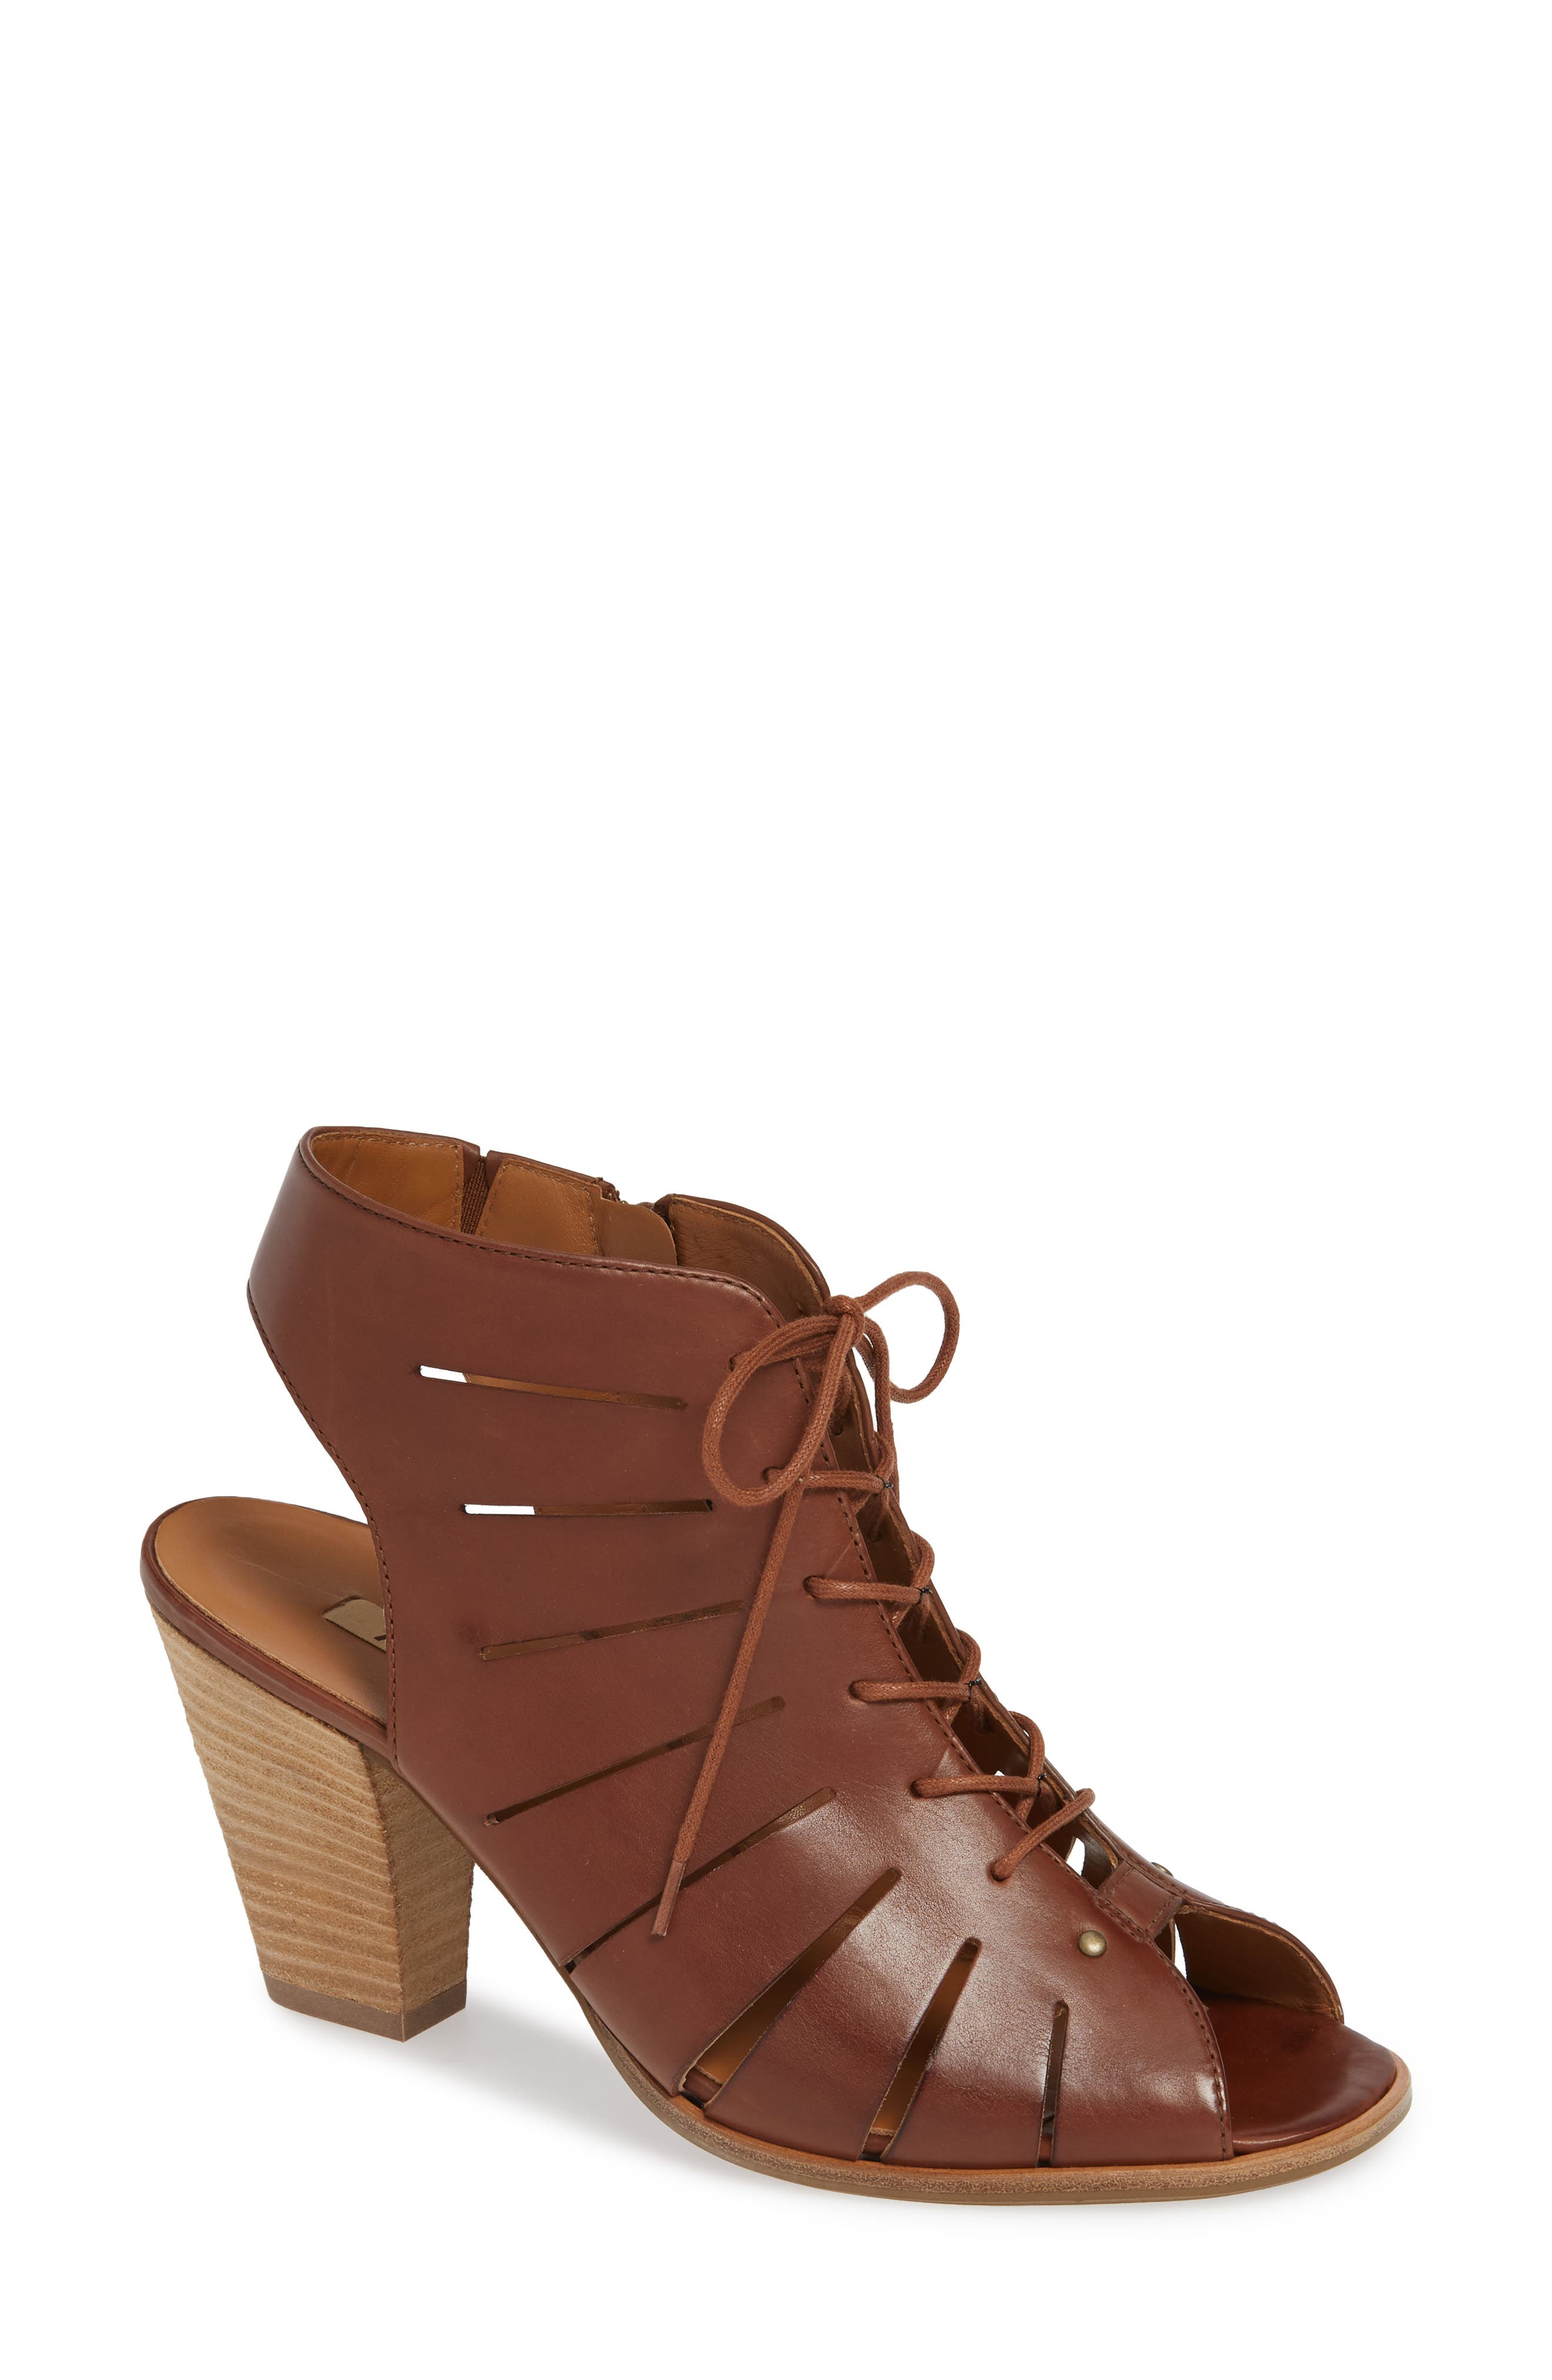 PAUL GREEN 'Cosmo' Peep Toe Sandal, Main, color, NOUGAT LEATHER